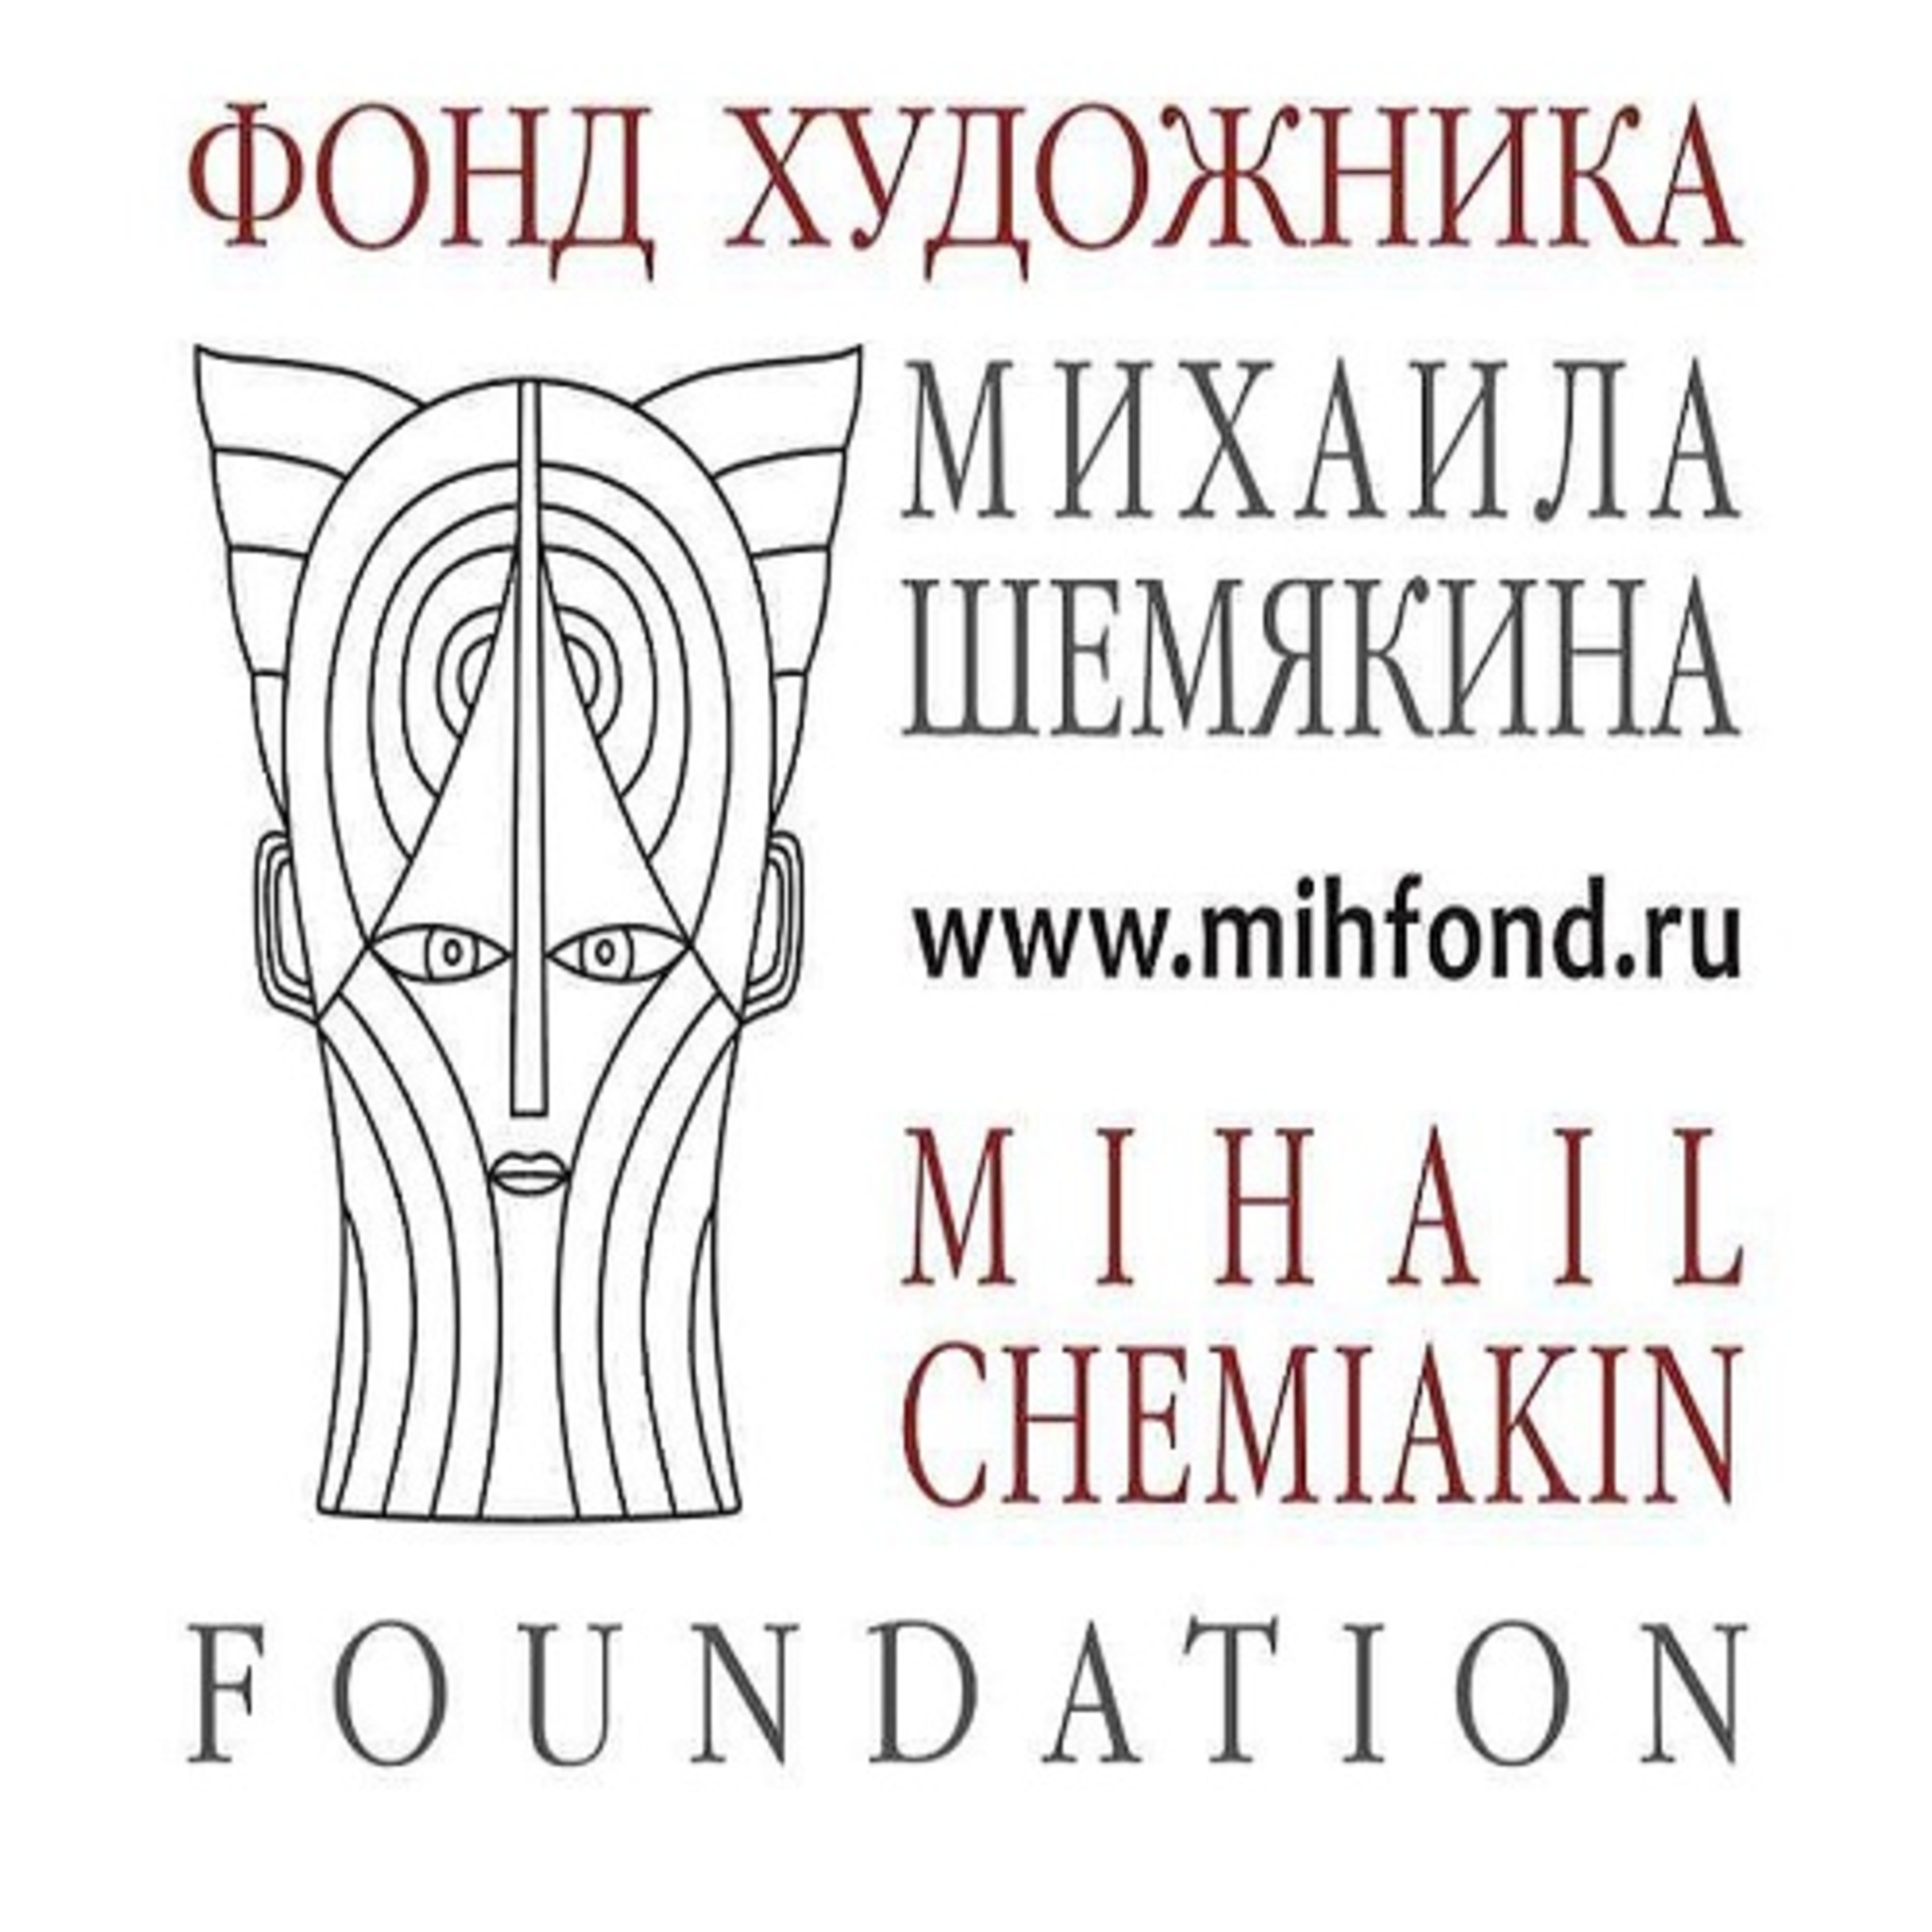 The foundation of the artist Mikhail Shemyakin